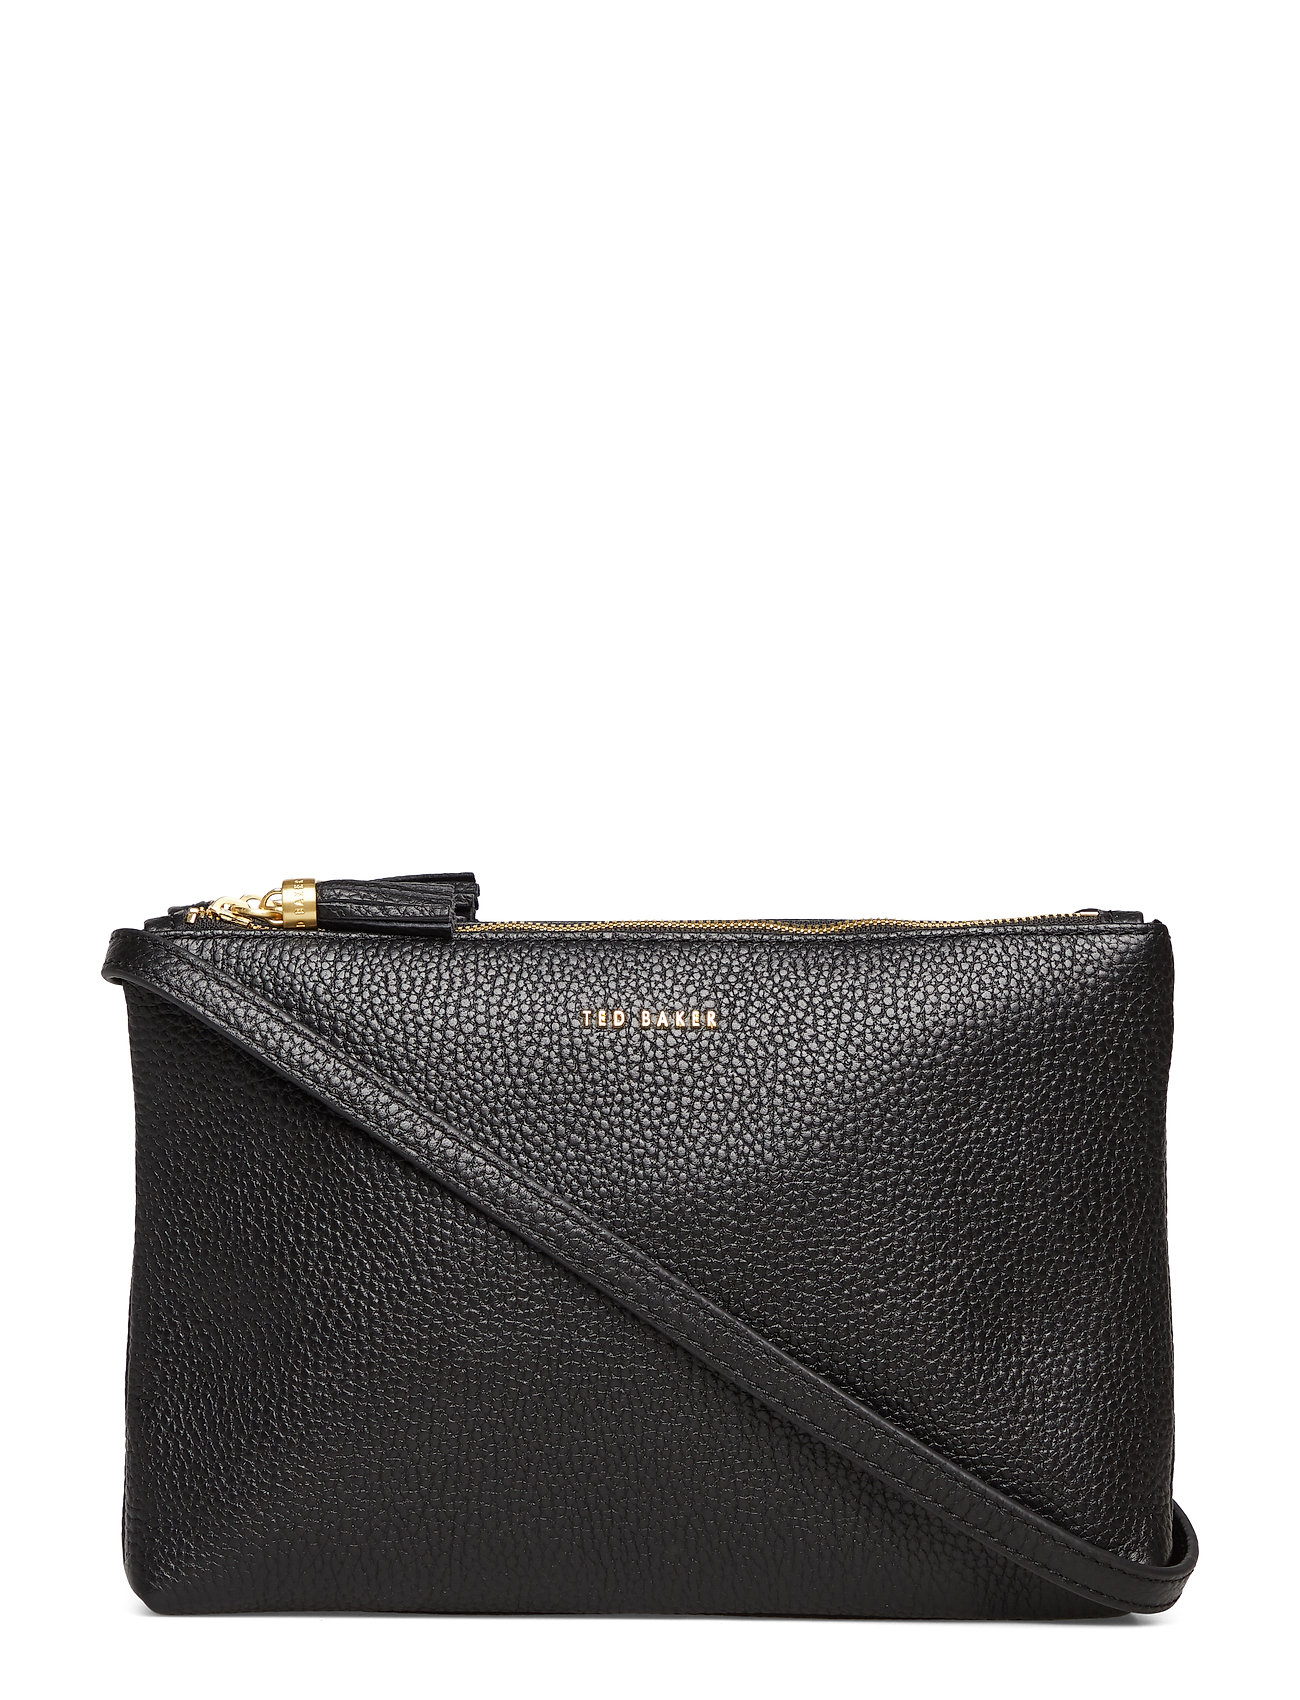 TED BAKER Maceyy Bags Small Shoulder Bags/crossbody Bags Schwarz TED BAKER